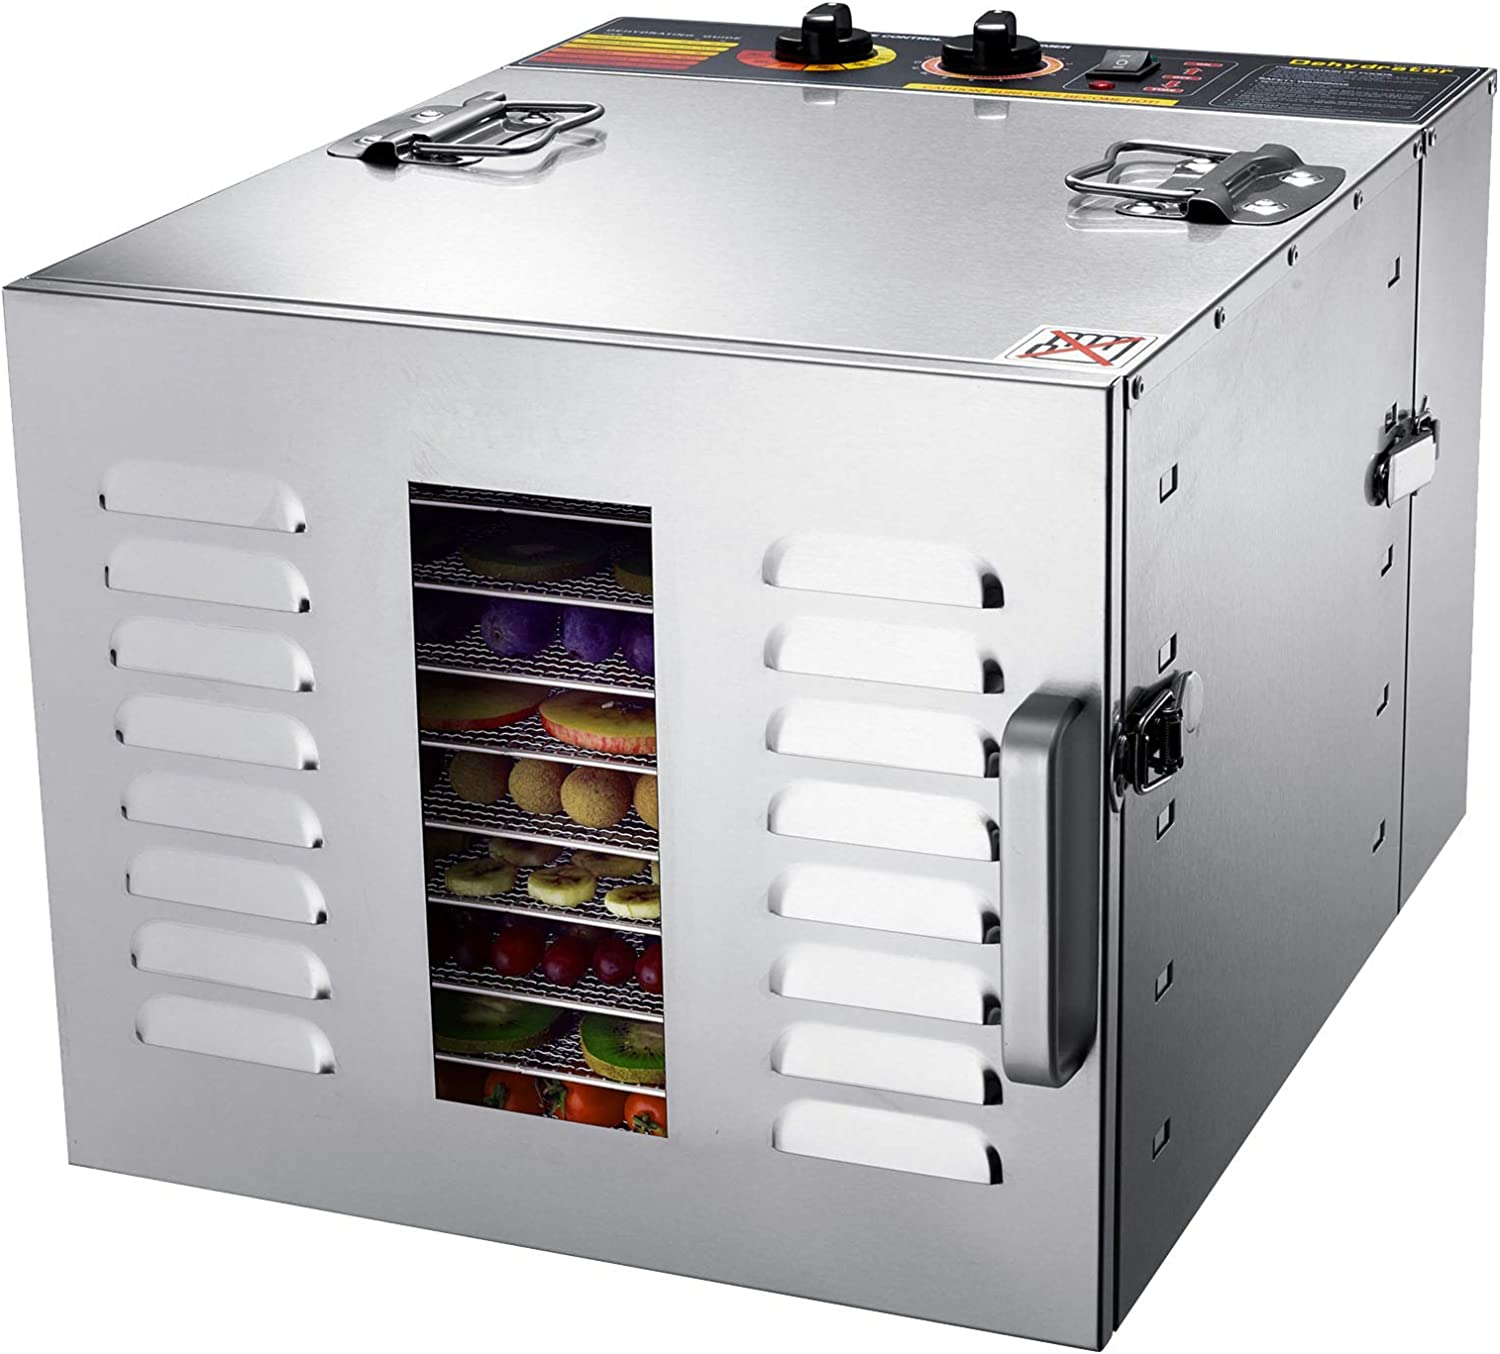 BioChef Arizona 10 Tray Commercial Stainless Steel 1000W Food Dehydrator with 15 Hour Digital Timer, Stainless Steel Trays, 3 x mesh Sheets, 3 x Non-Stick Sheets